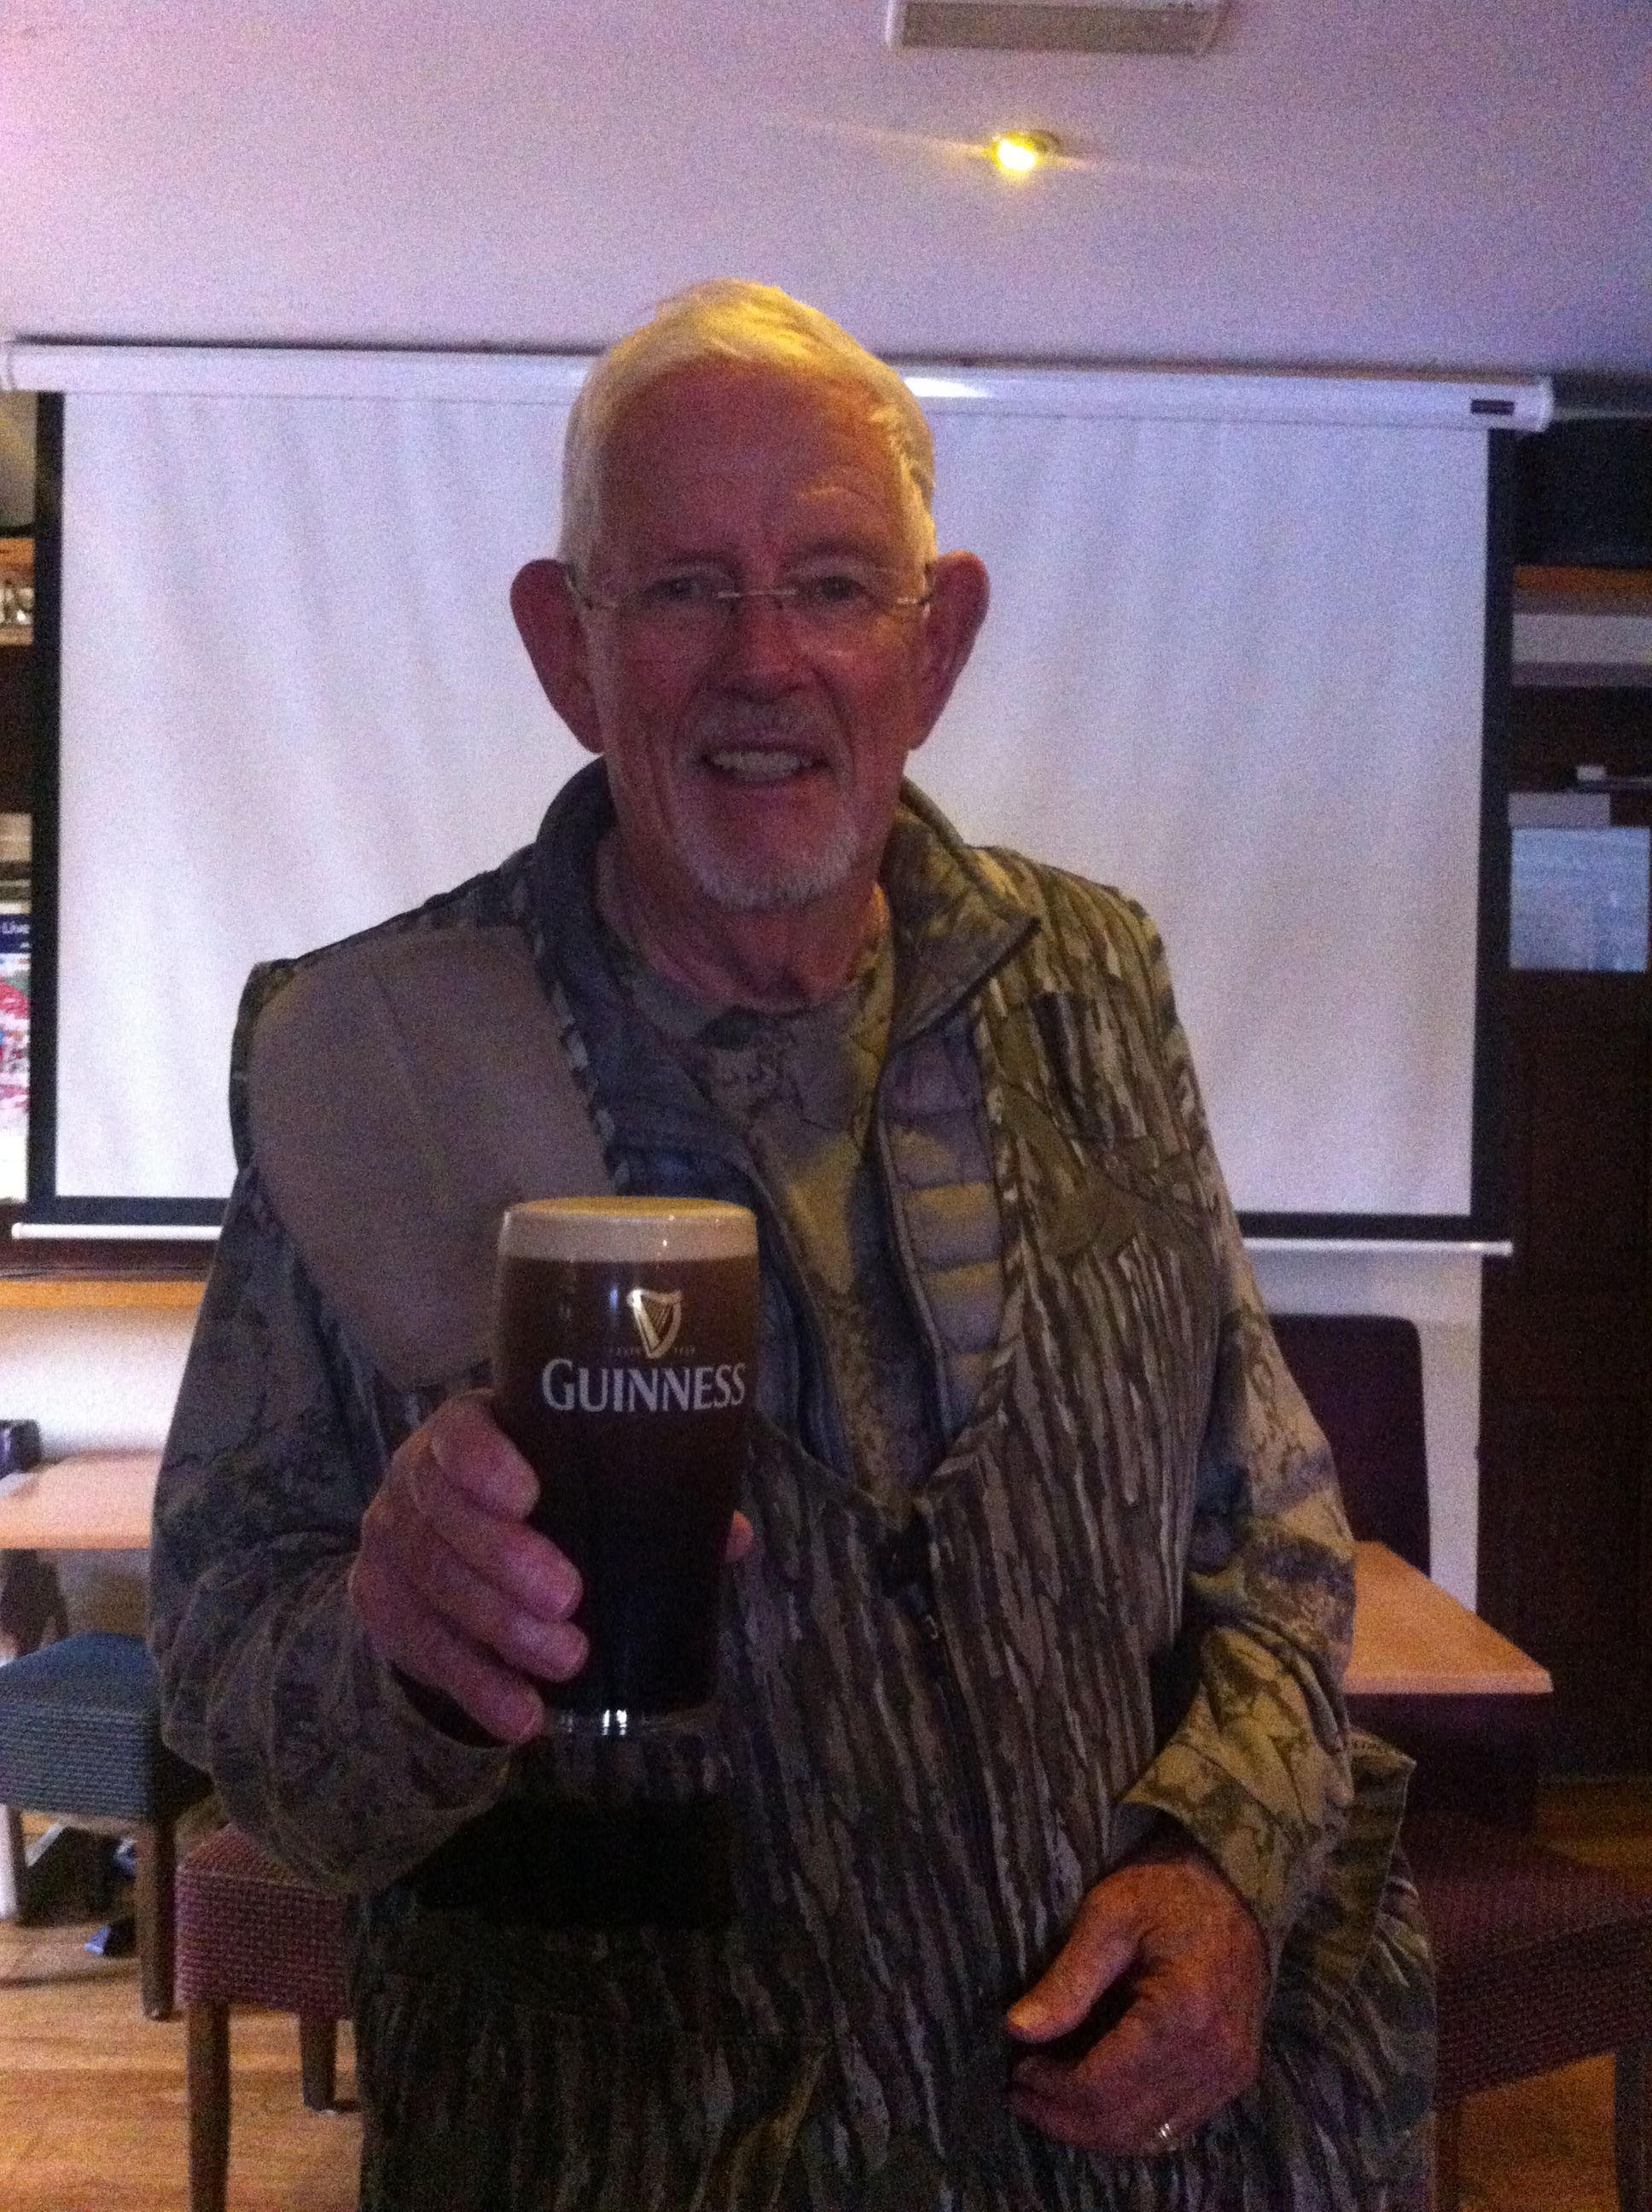 We all agreed that Jim had earned his Pint, his first ever Guinness in Ireland.